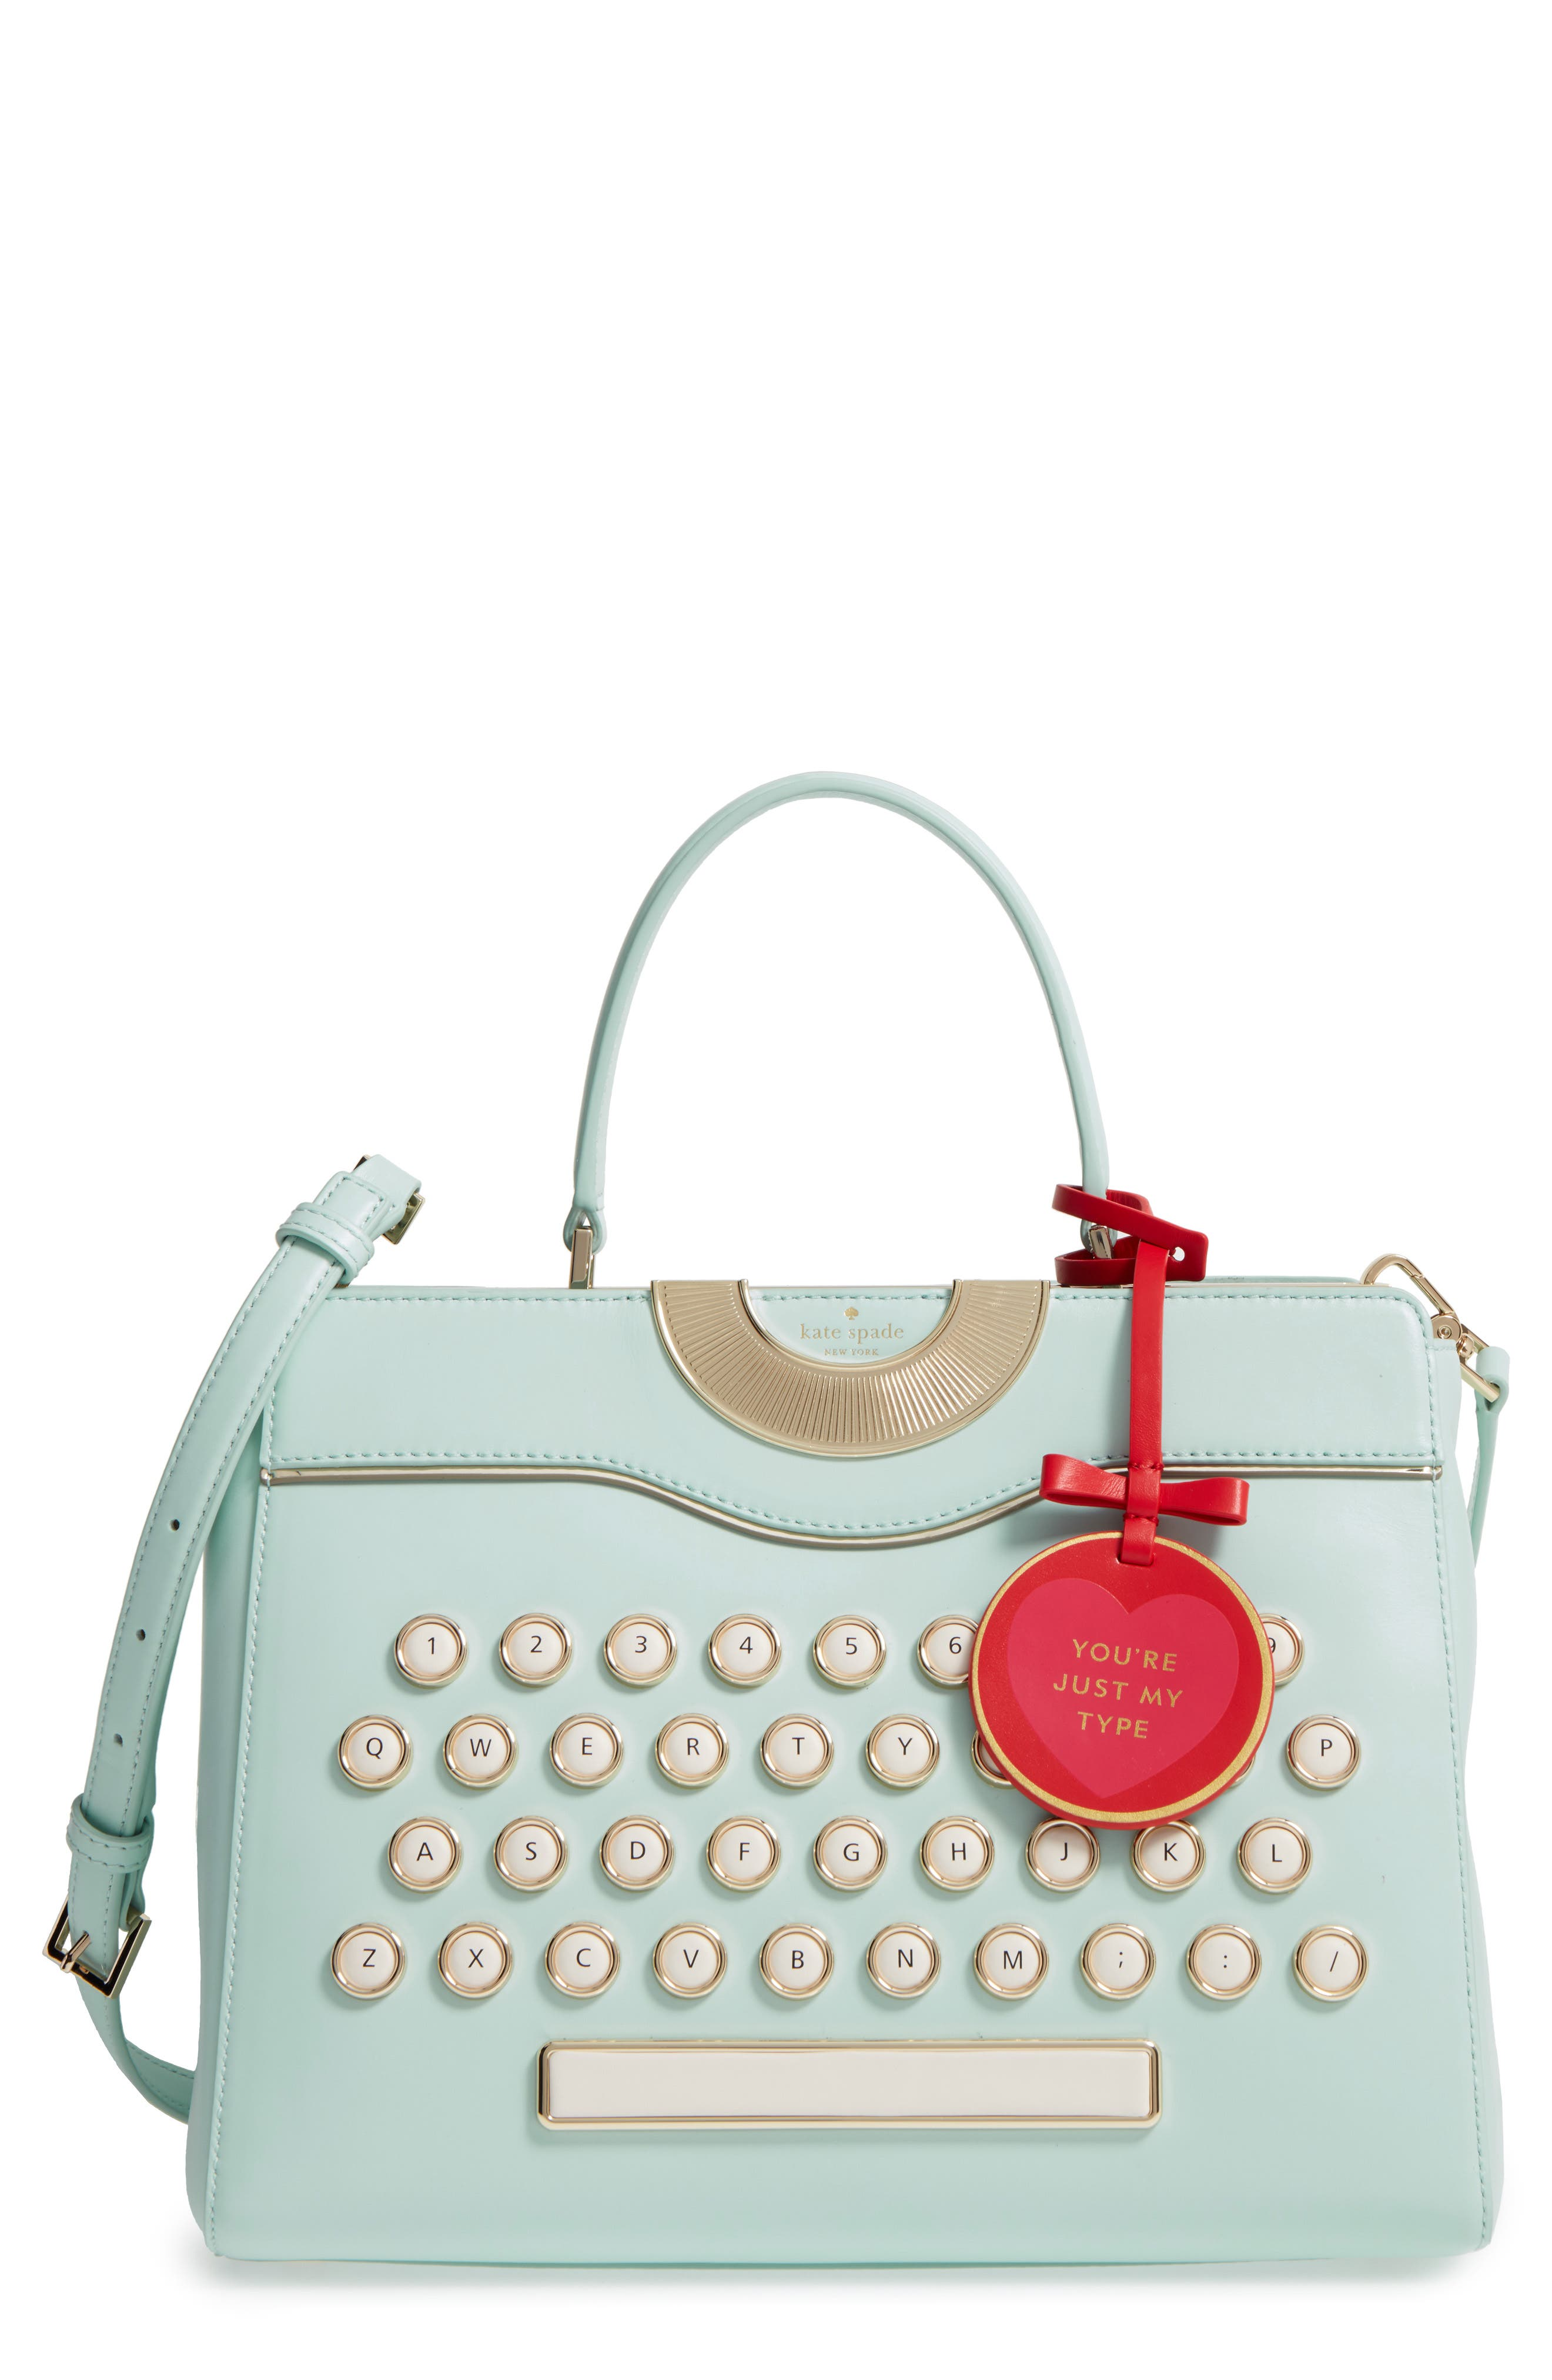 be mine - typewriter leather satchel, Main, color, 474